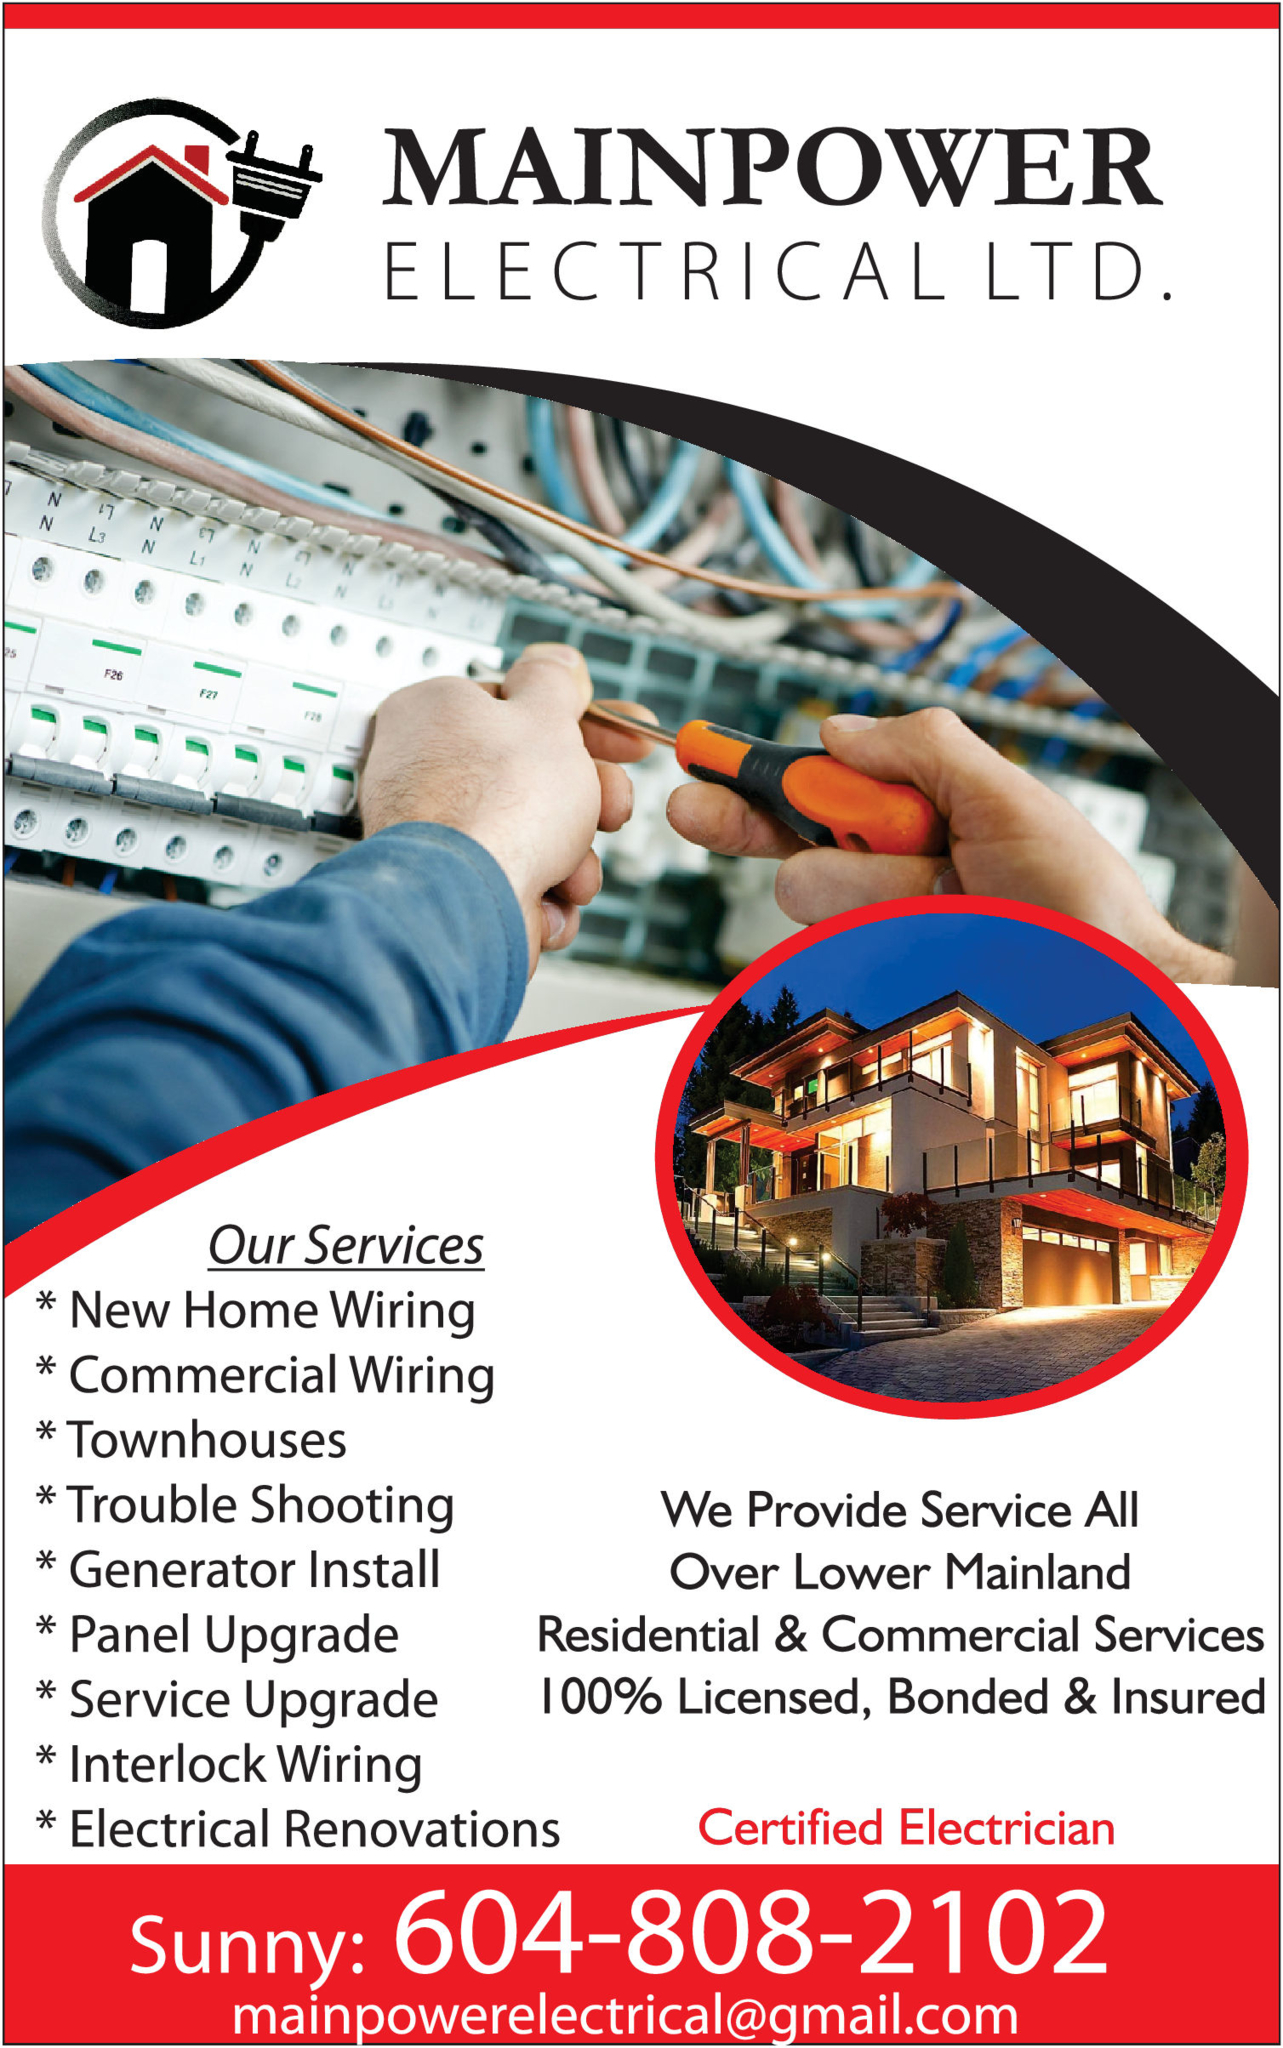 Mainpower Electrical Ltd in SURREY